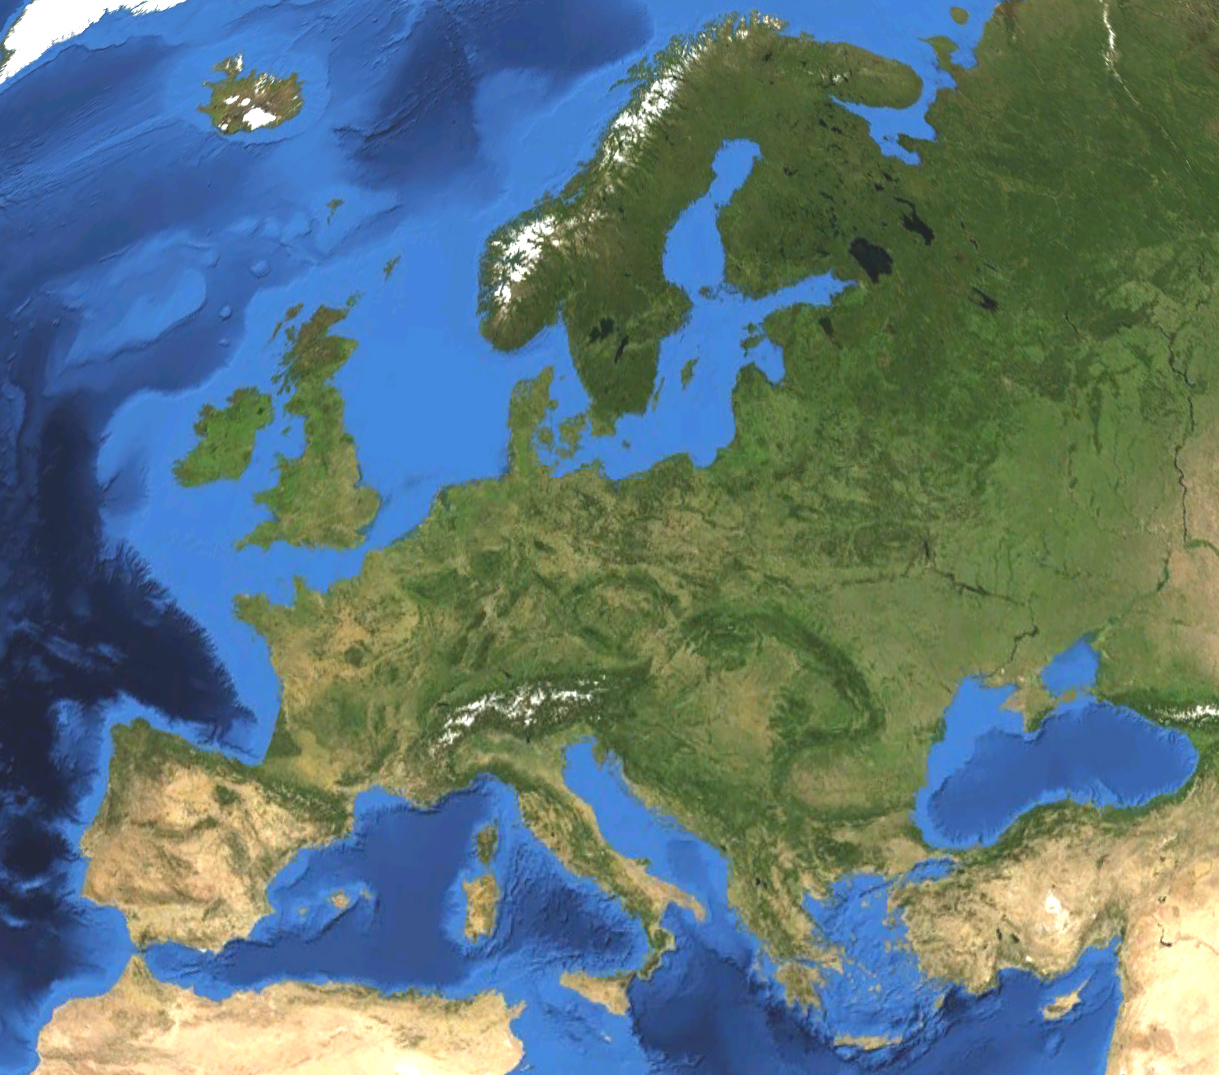 Satellite picture of Europe. Land terrain and bathymetry (ocean-floor topography). Credit: Koyos (distributed via  Wikimedia Commons)